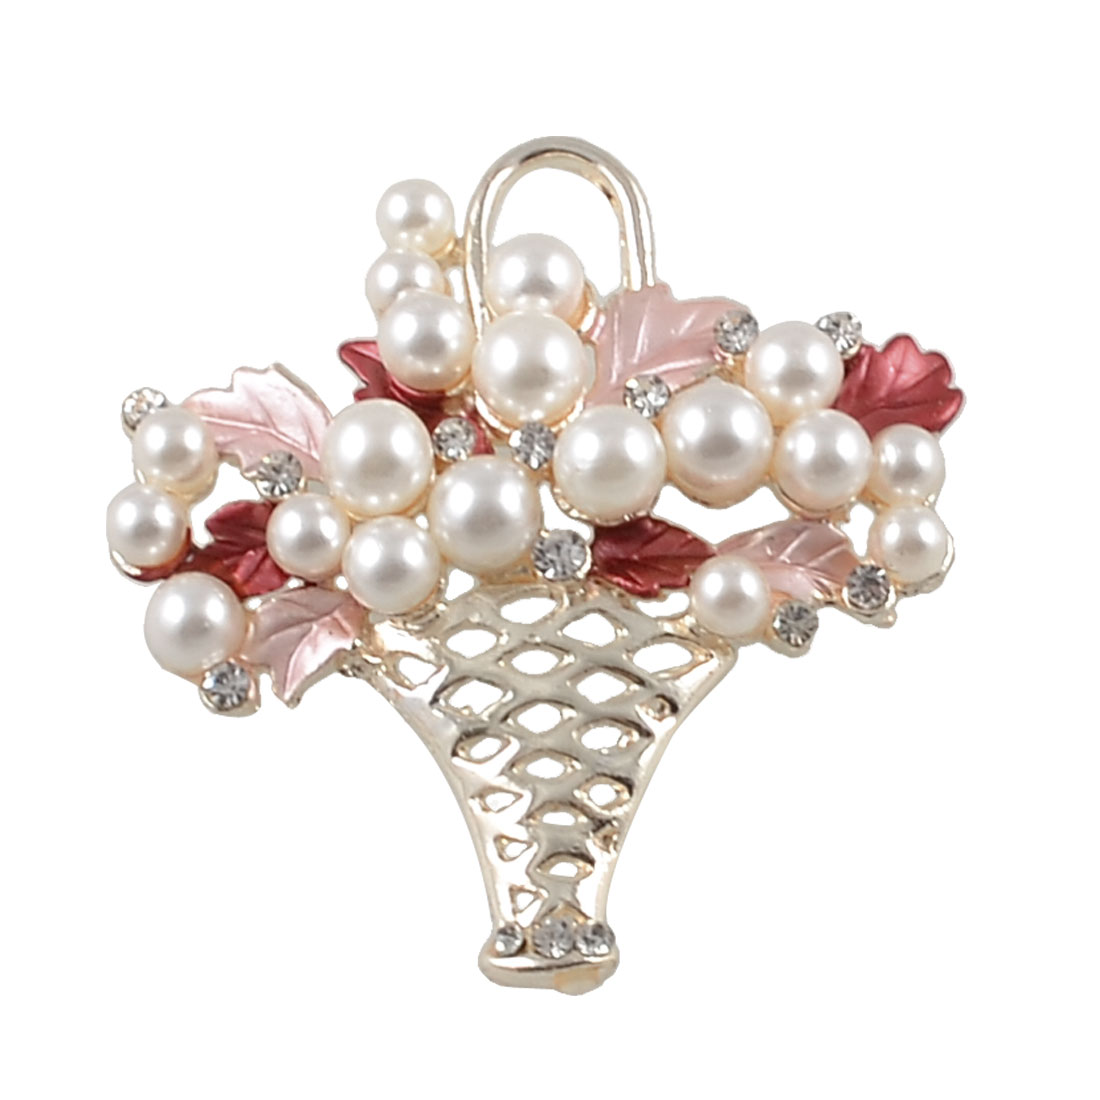 Rhinestone Imitation Pearl Accent Pink Amaranth Leaf Flower Basket Metal Pin Brooch Gold Tone